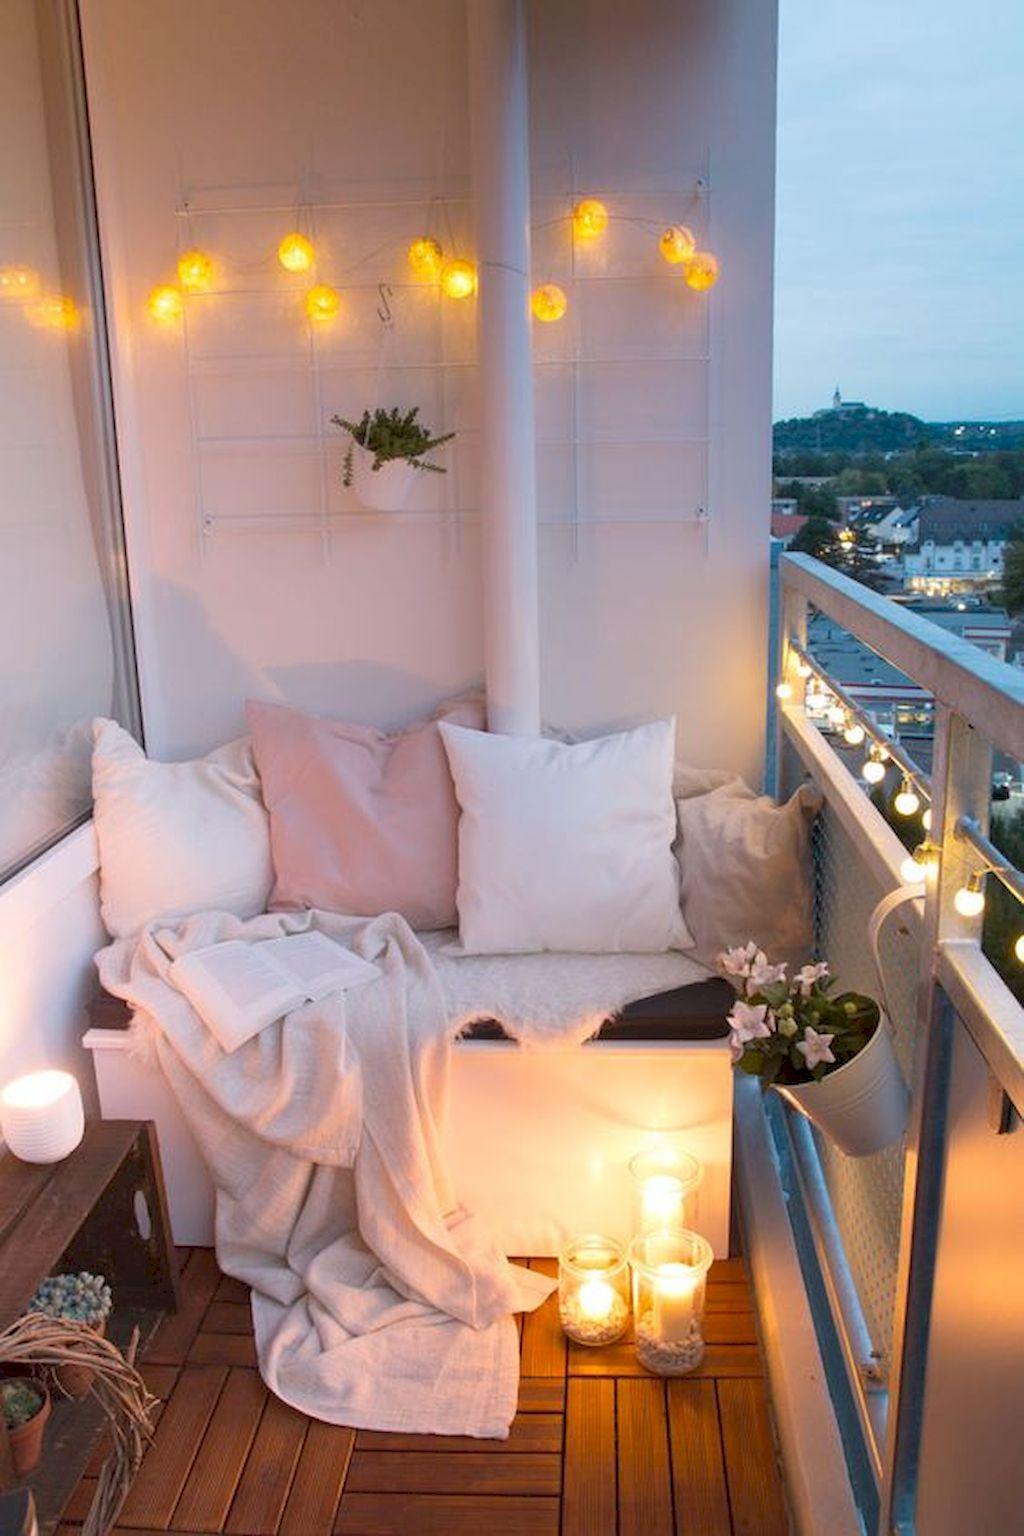 Balkon Einrichtungsideen Pin By Debbie Perrian On Balcony Ideas 1 Balkon Bauen Balkon